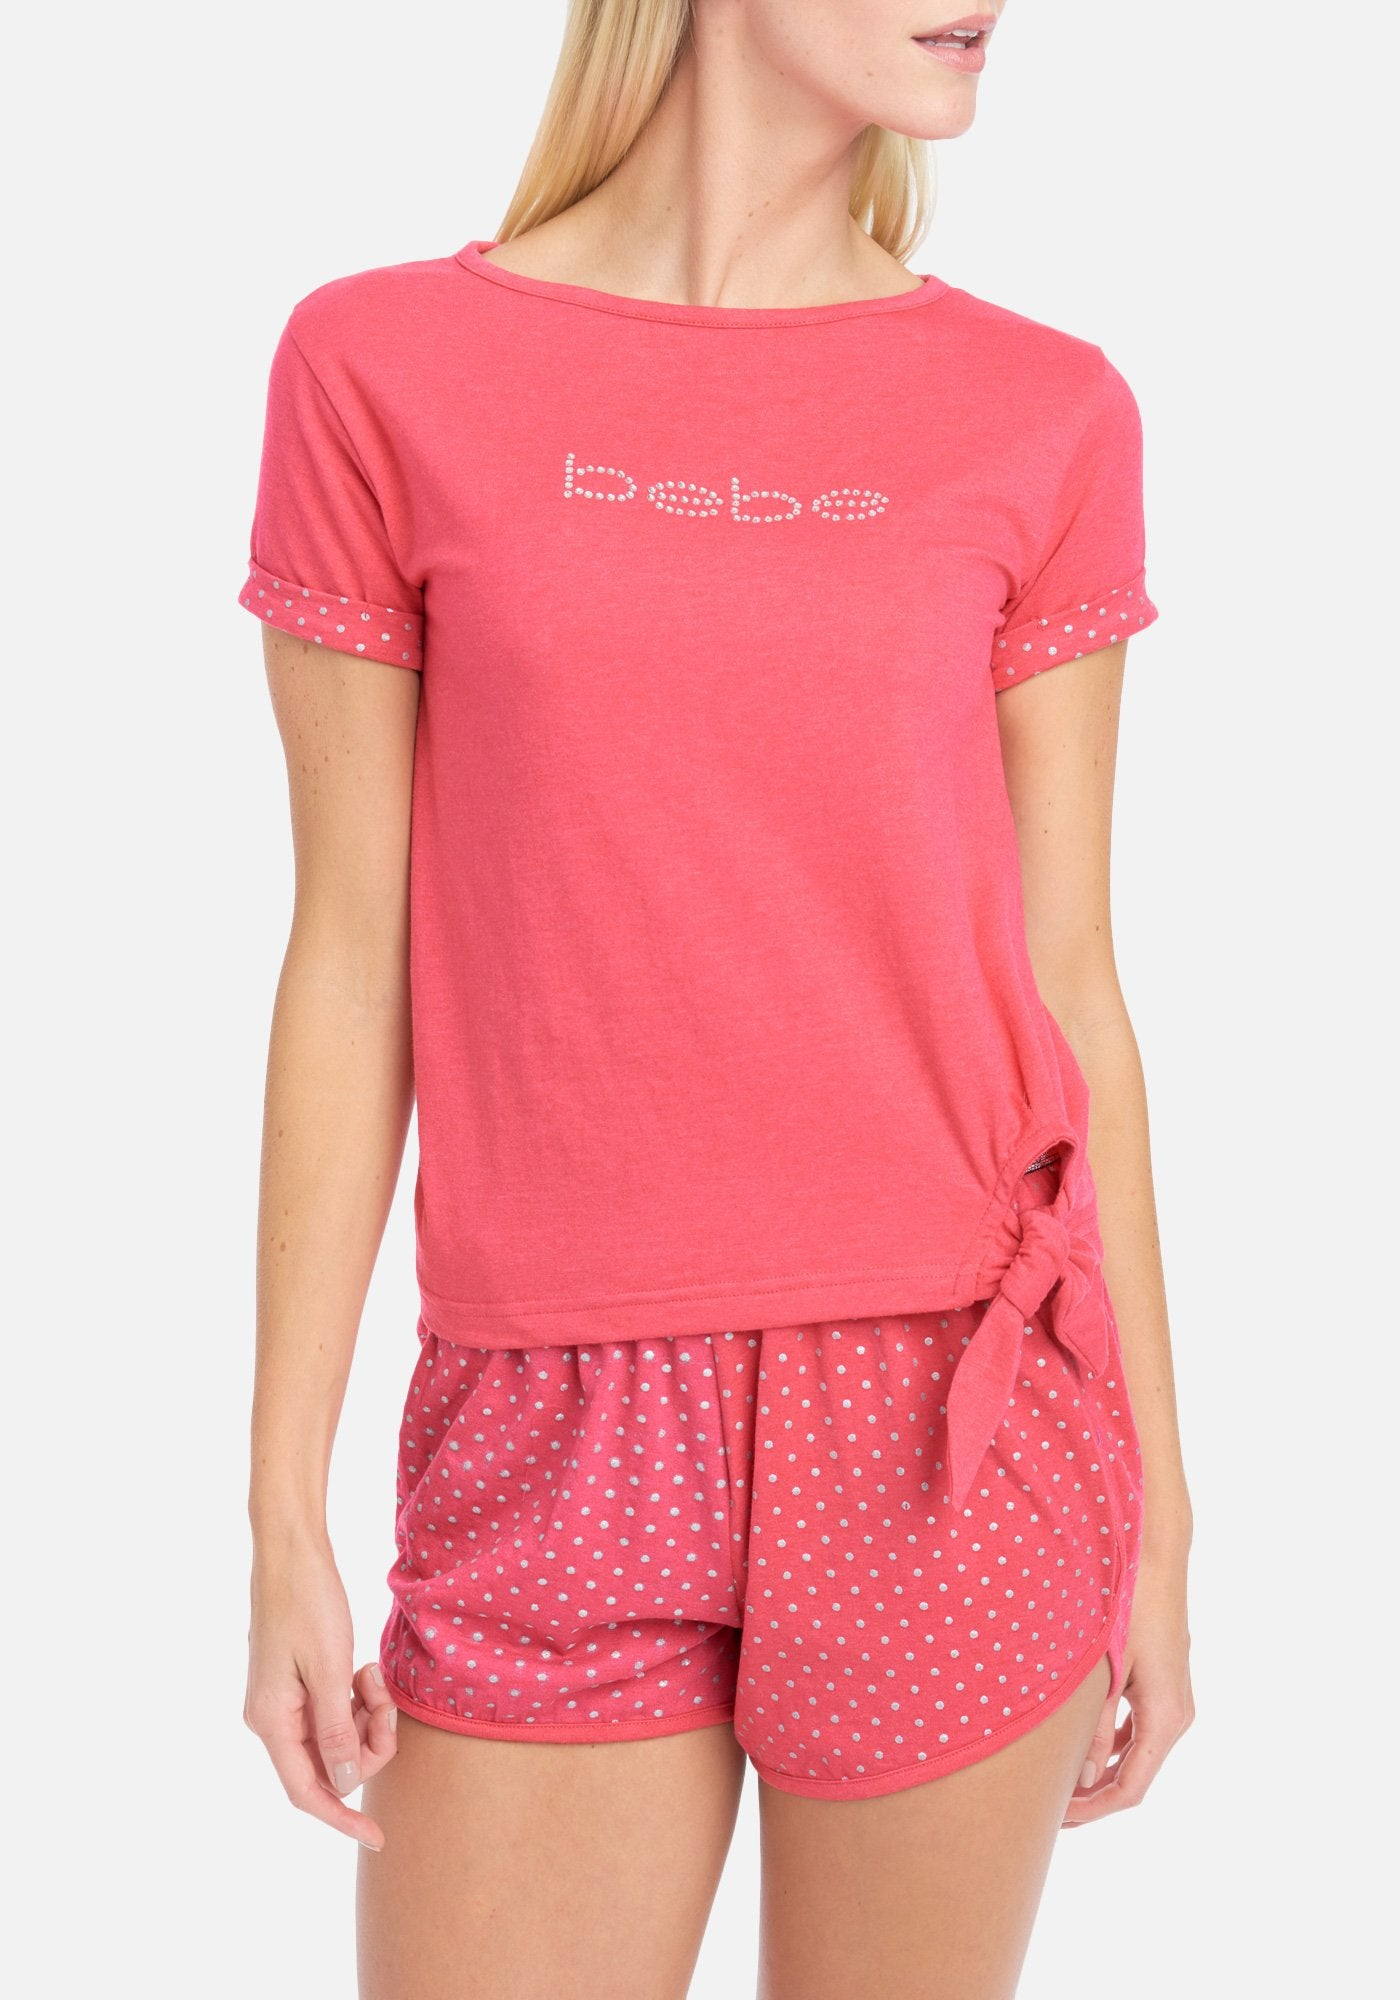 Women's Bebe Polka Dot 2 Piece Short Set, Size Small in Bright Rose Heather Spandex